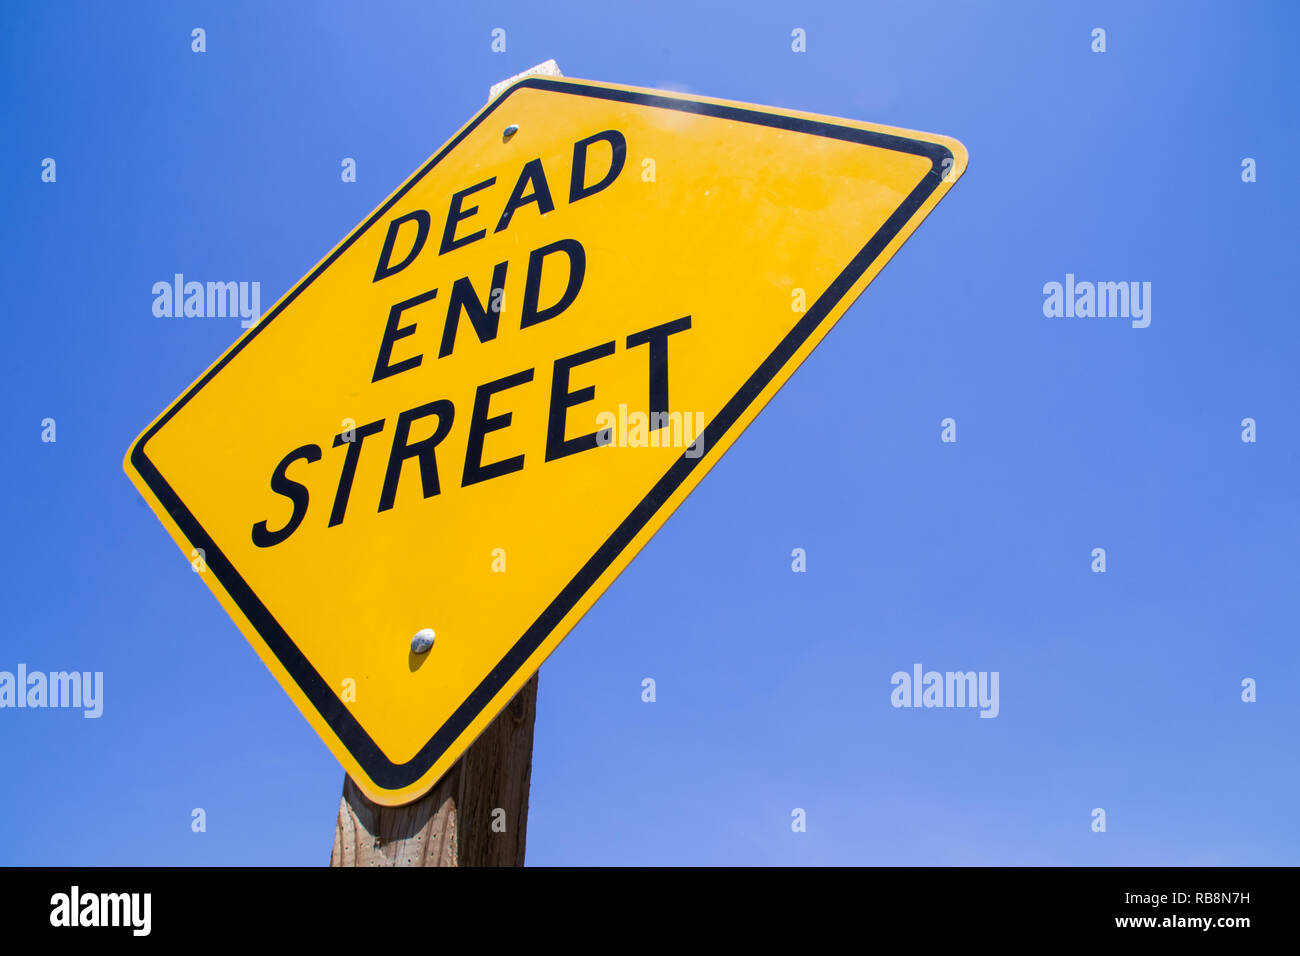 The 'Dead End Street' sign. - Stock Image